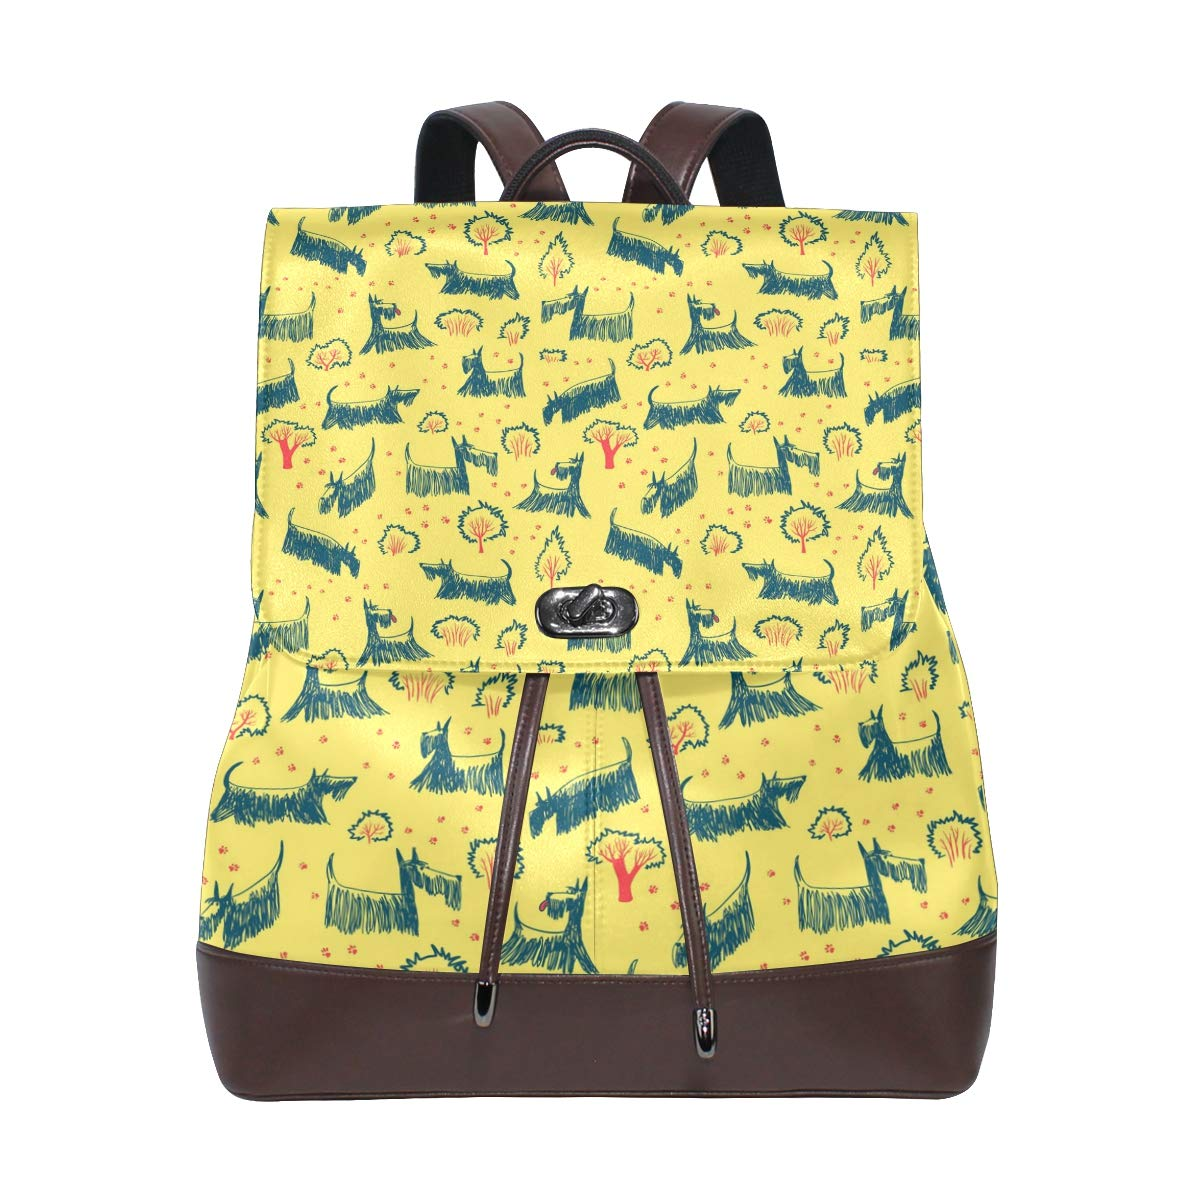 Unisex PU Leather Backpack Dachshund Gifts for Women Yellow Print Womens Casual Daypack Mens Travel Sports Bag Boys College Bookbag